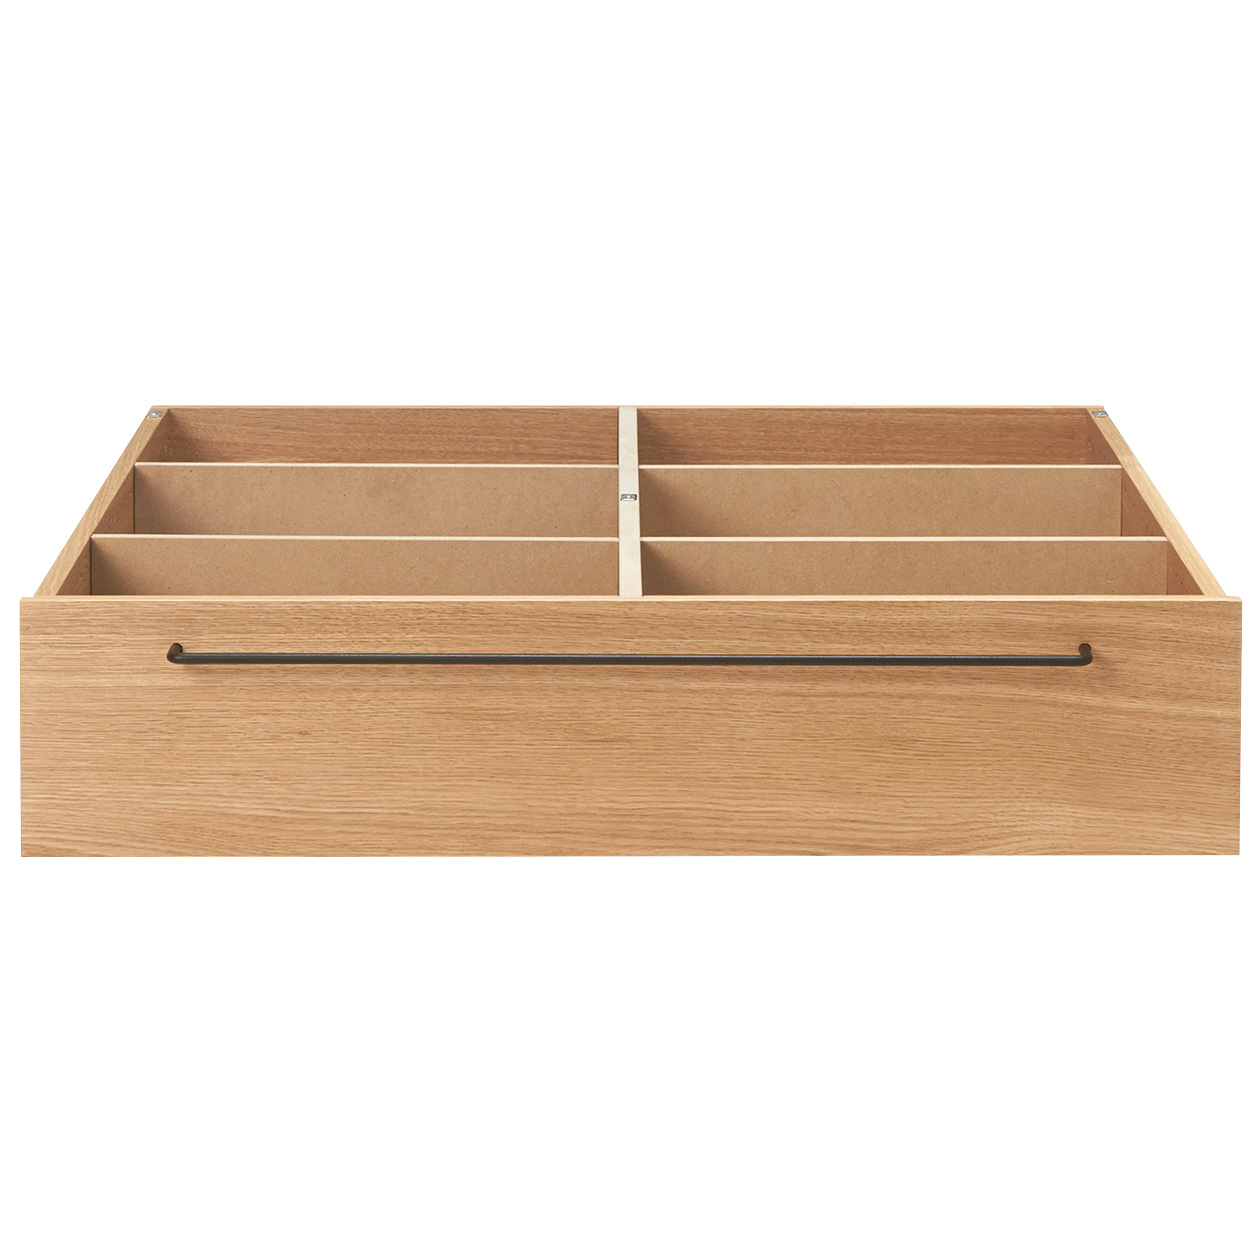 BED FRAME / UNDERBED STORAGE / L / OAK W80*D90.5*H19cm